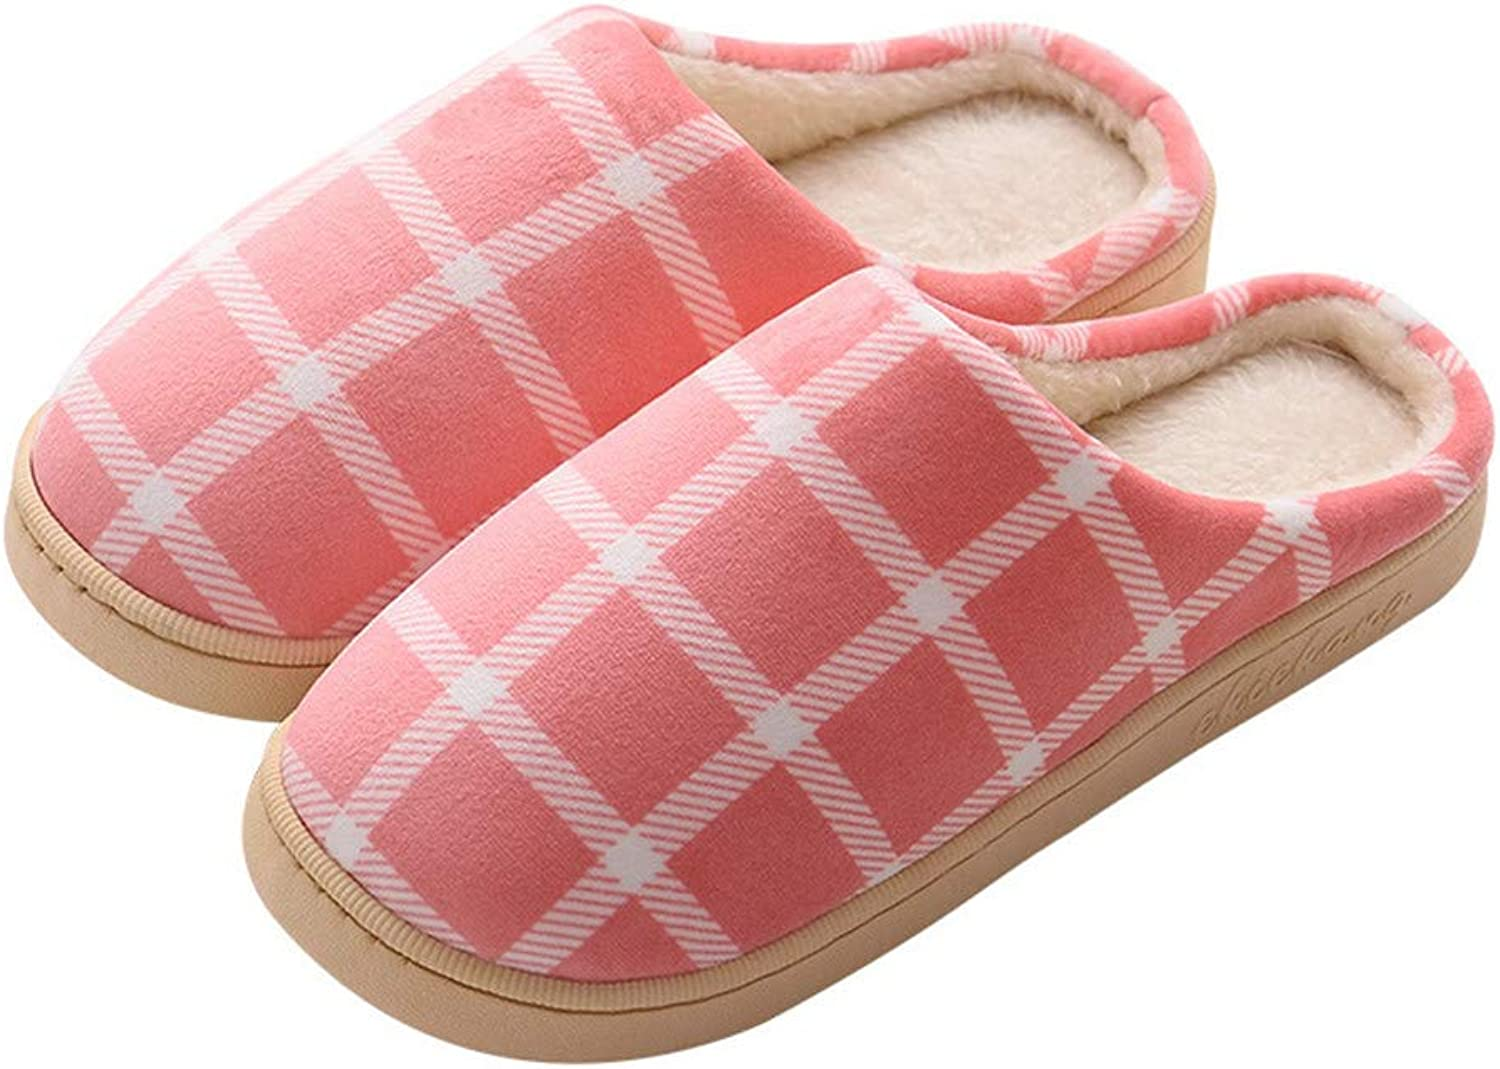 Women's Men's Slippers Plaid Cotton Slippers Warm Indoor Home shoes Women Autumn and Winter Thickening Non-Slip Plush Slippers Comfortable Memory Cotton Slippers House shoes Indoor Outdoor